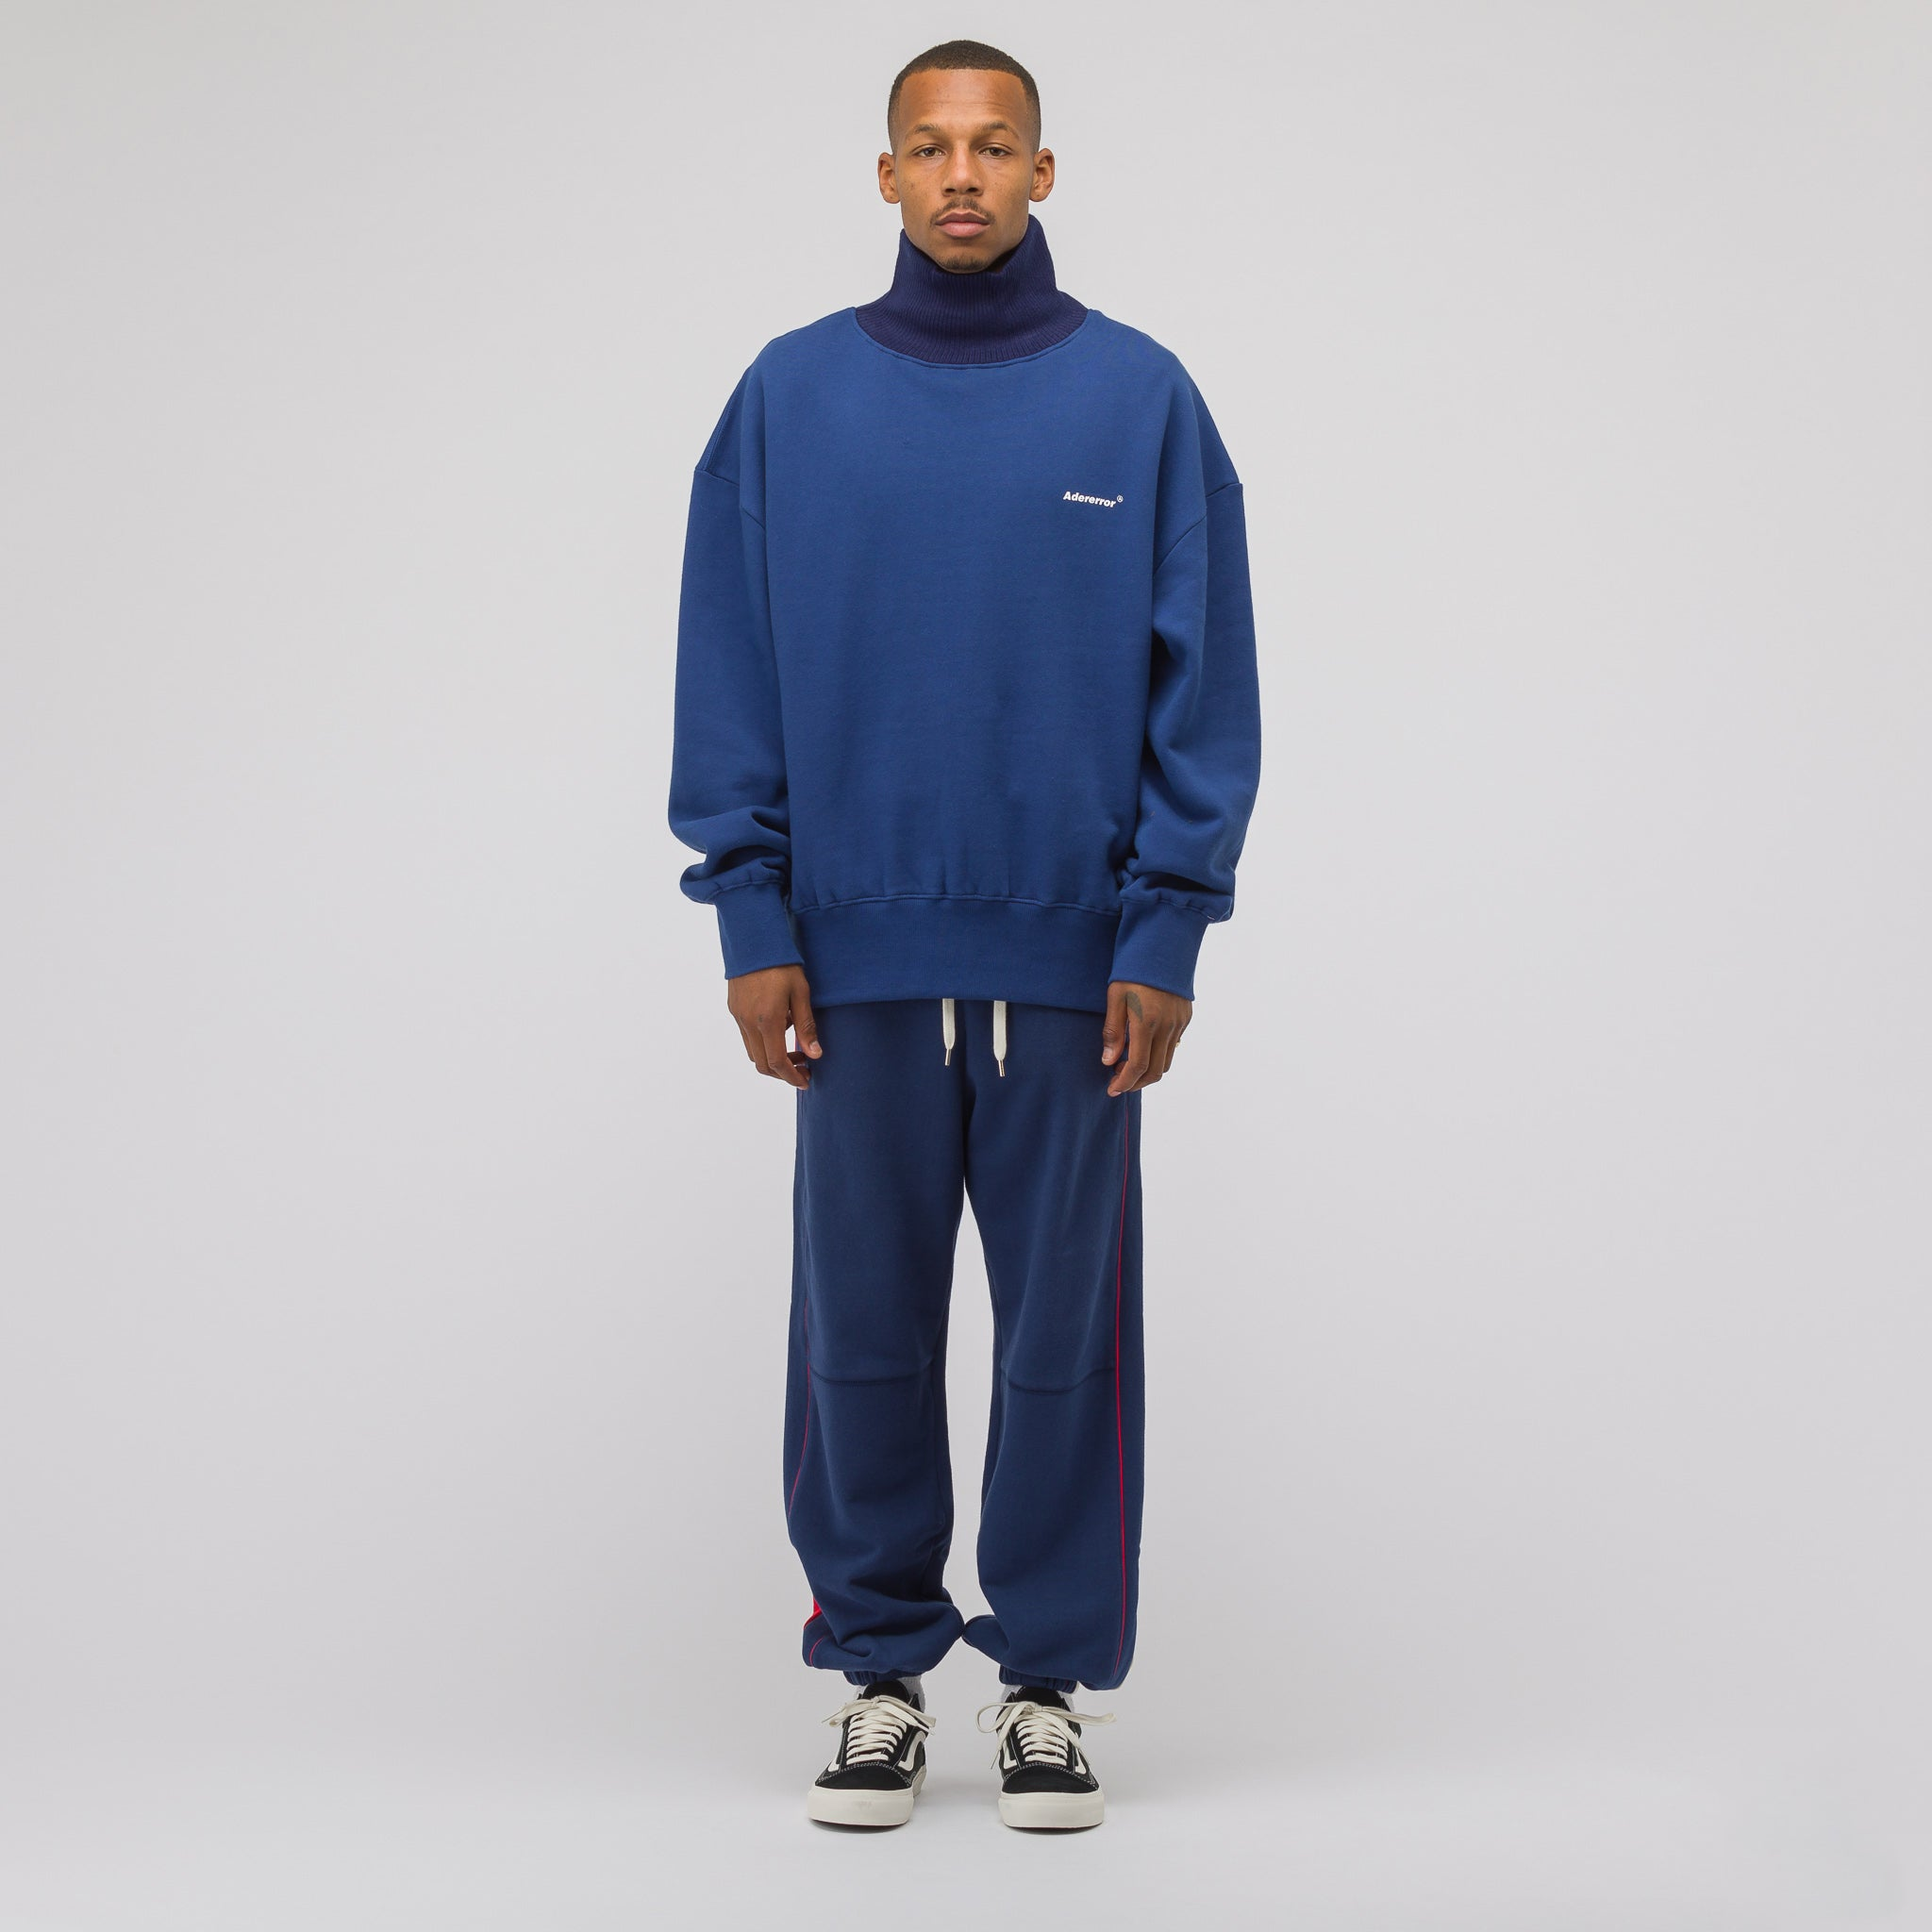 Incision Jogger Trouser in Navy